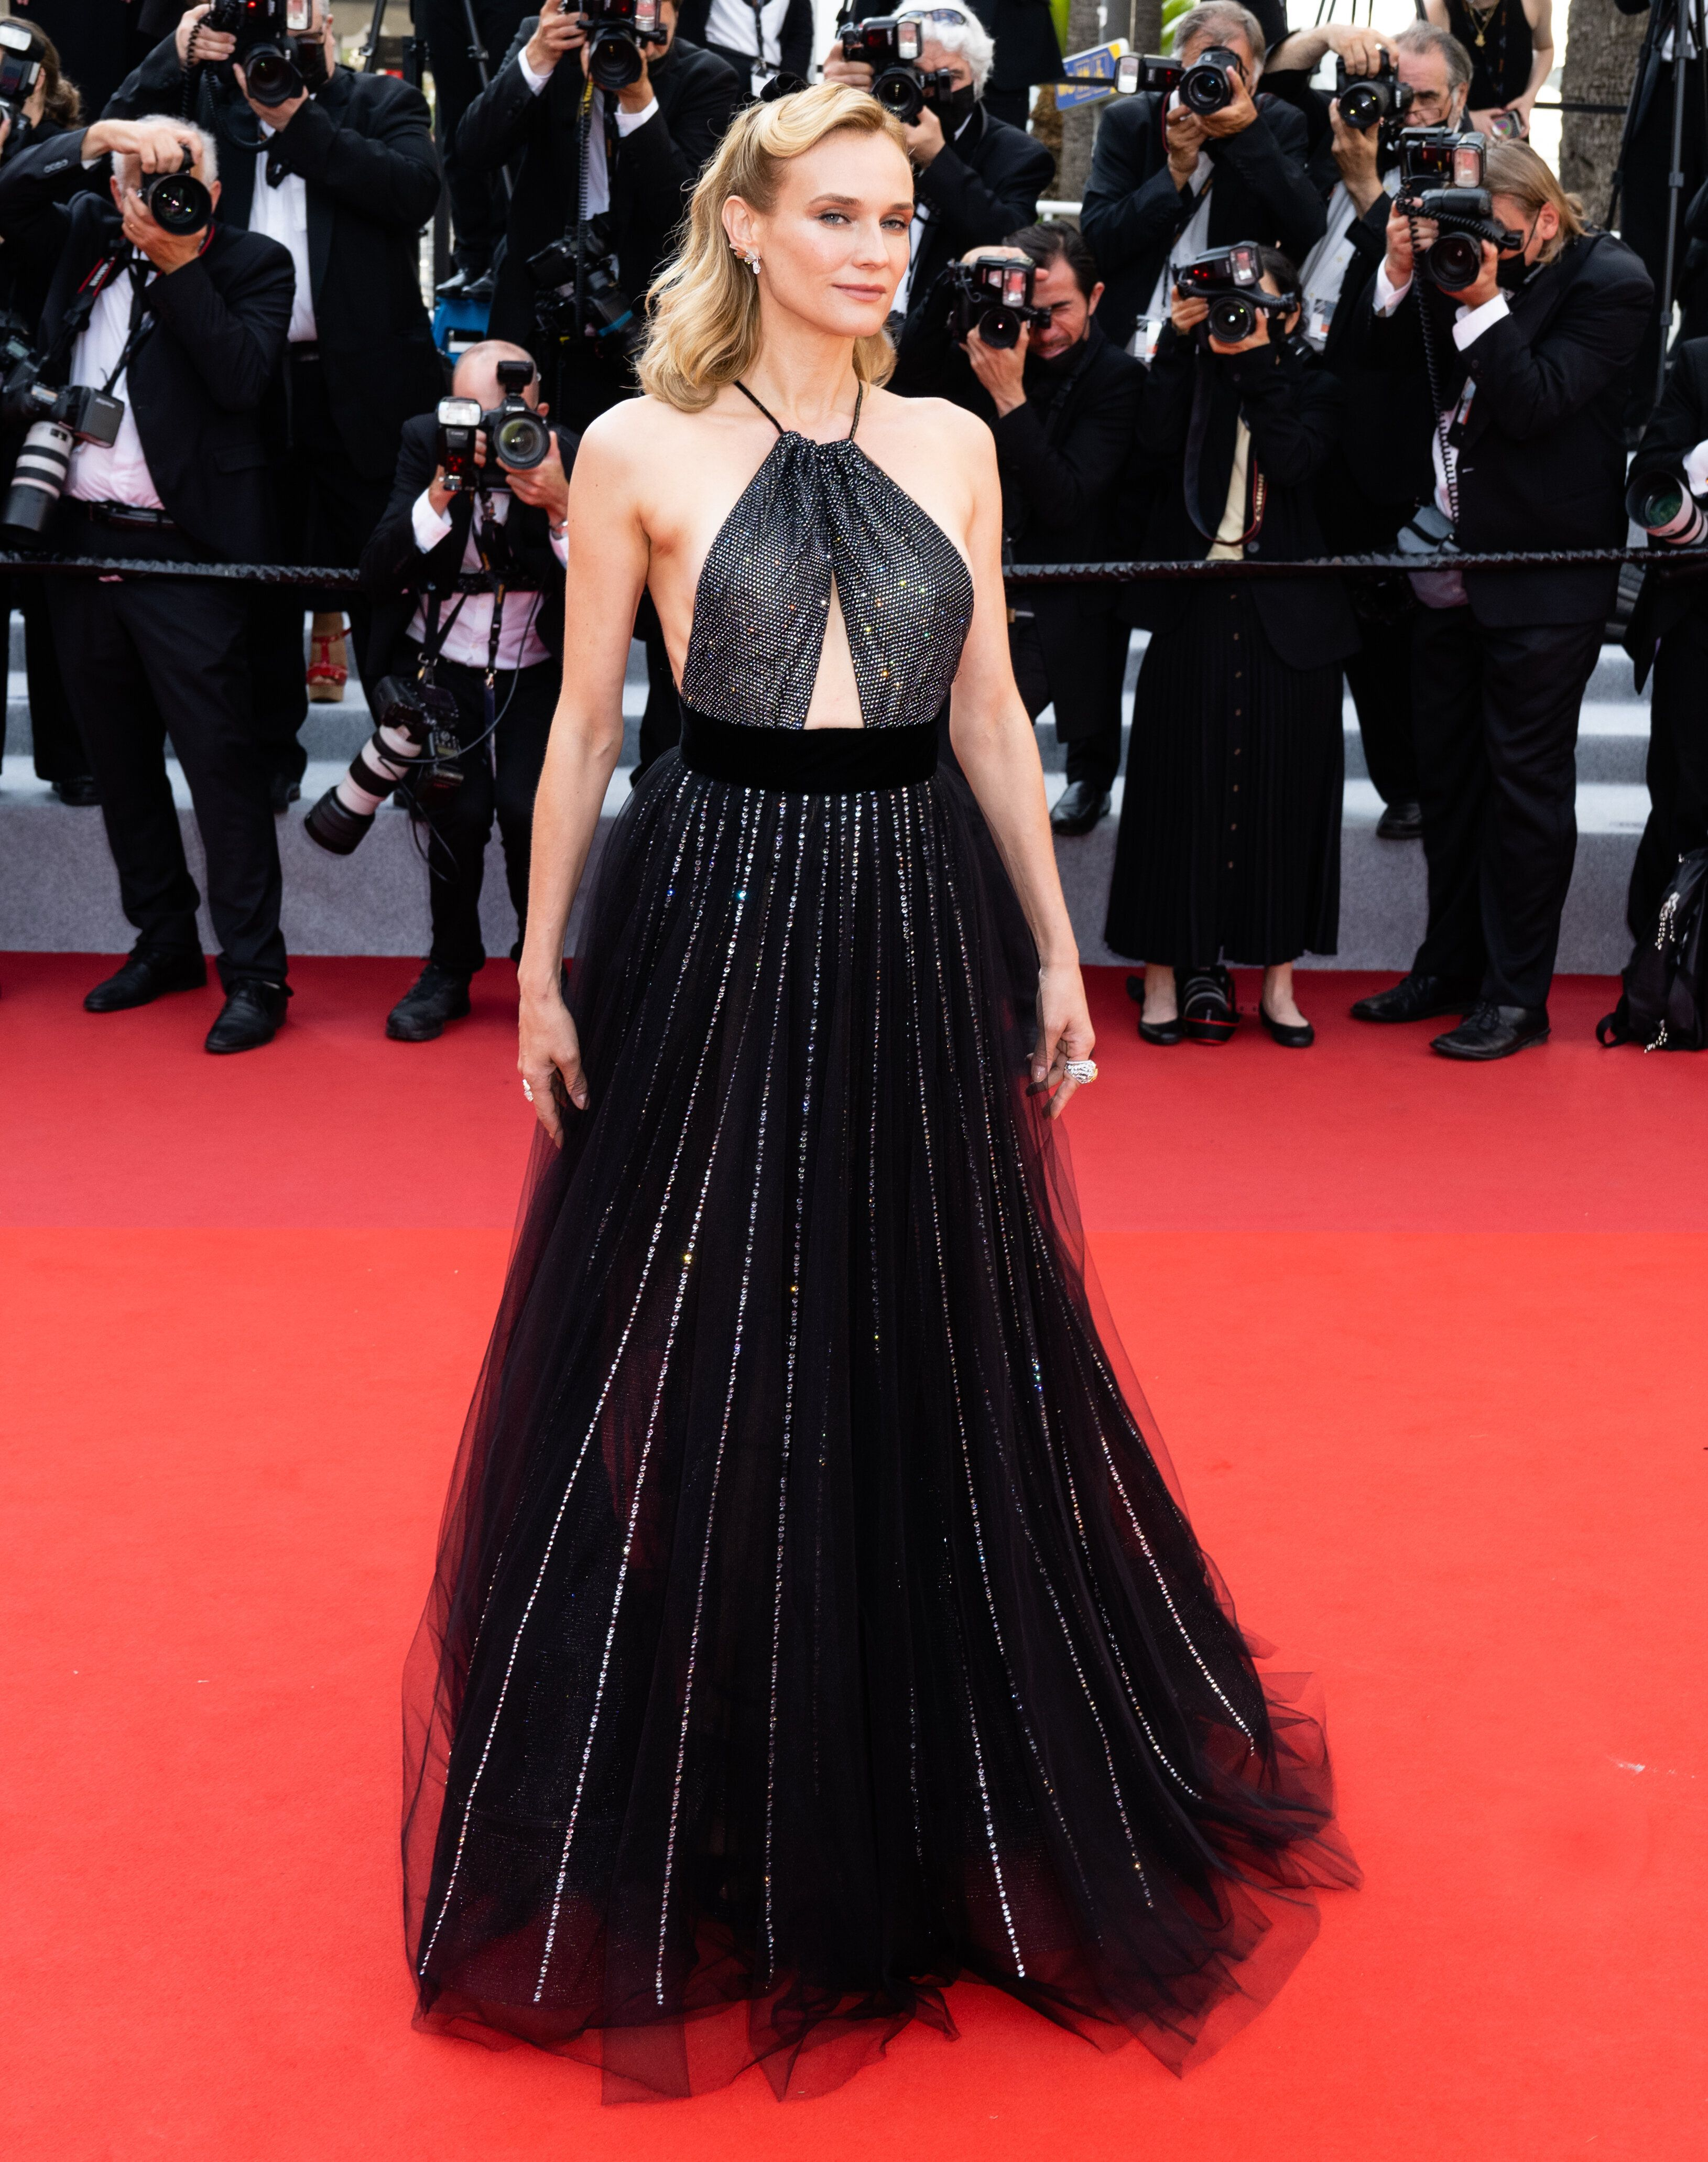 """Diane Kruger stuns on the red carpet at the premiere of """"Tout S'est Bien Passe """" at the74th Annual Cannes Film Festival"""